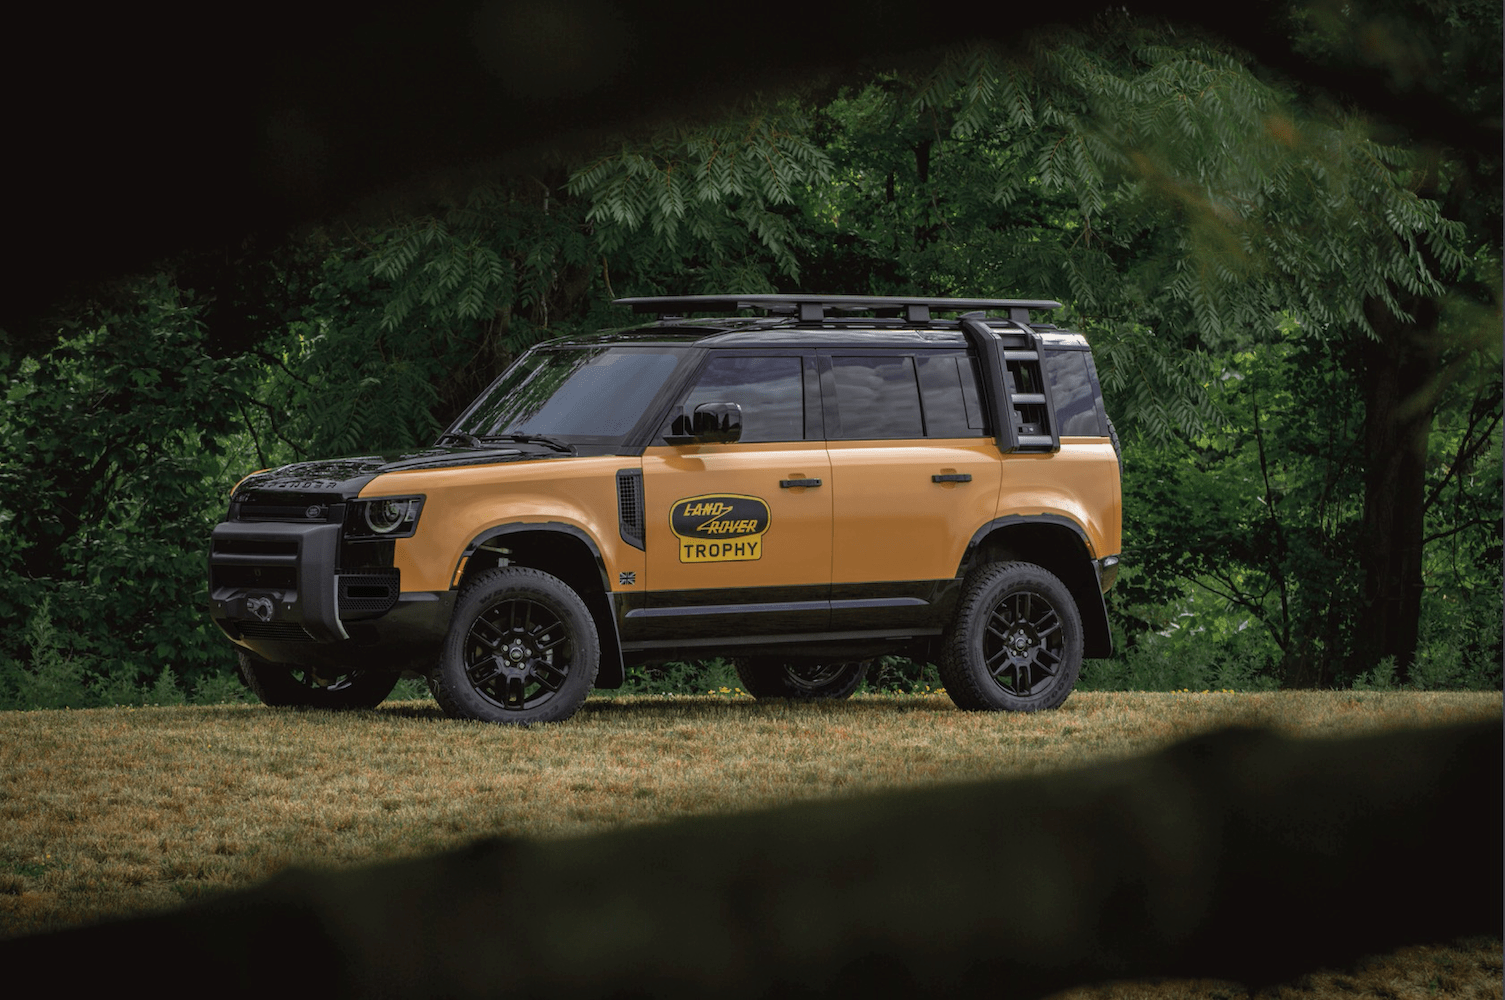 2022 Land Rover Defender Trophy parked in wooded area